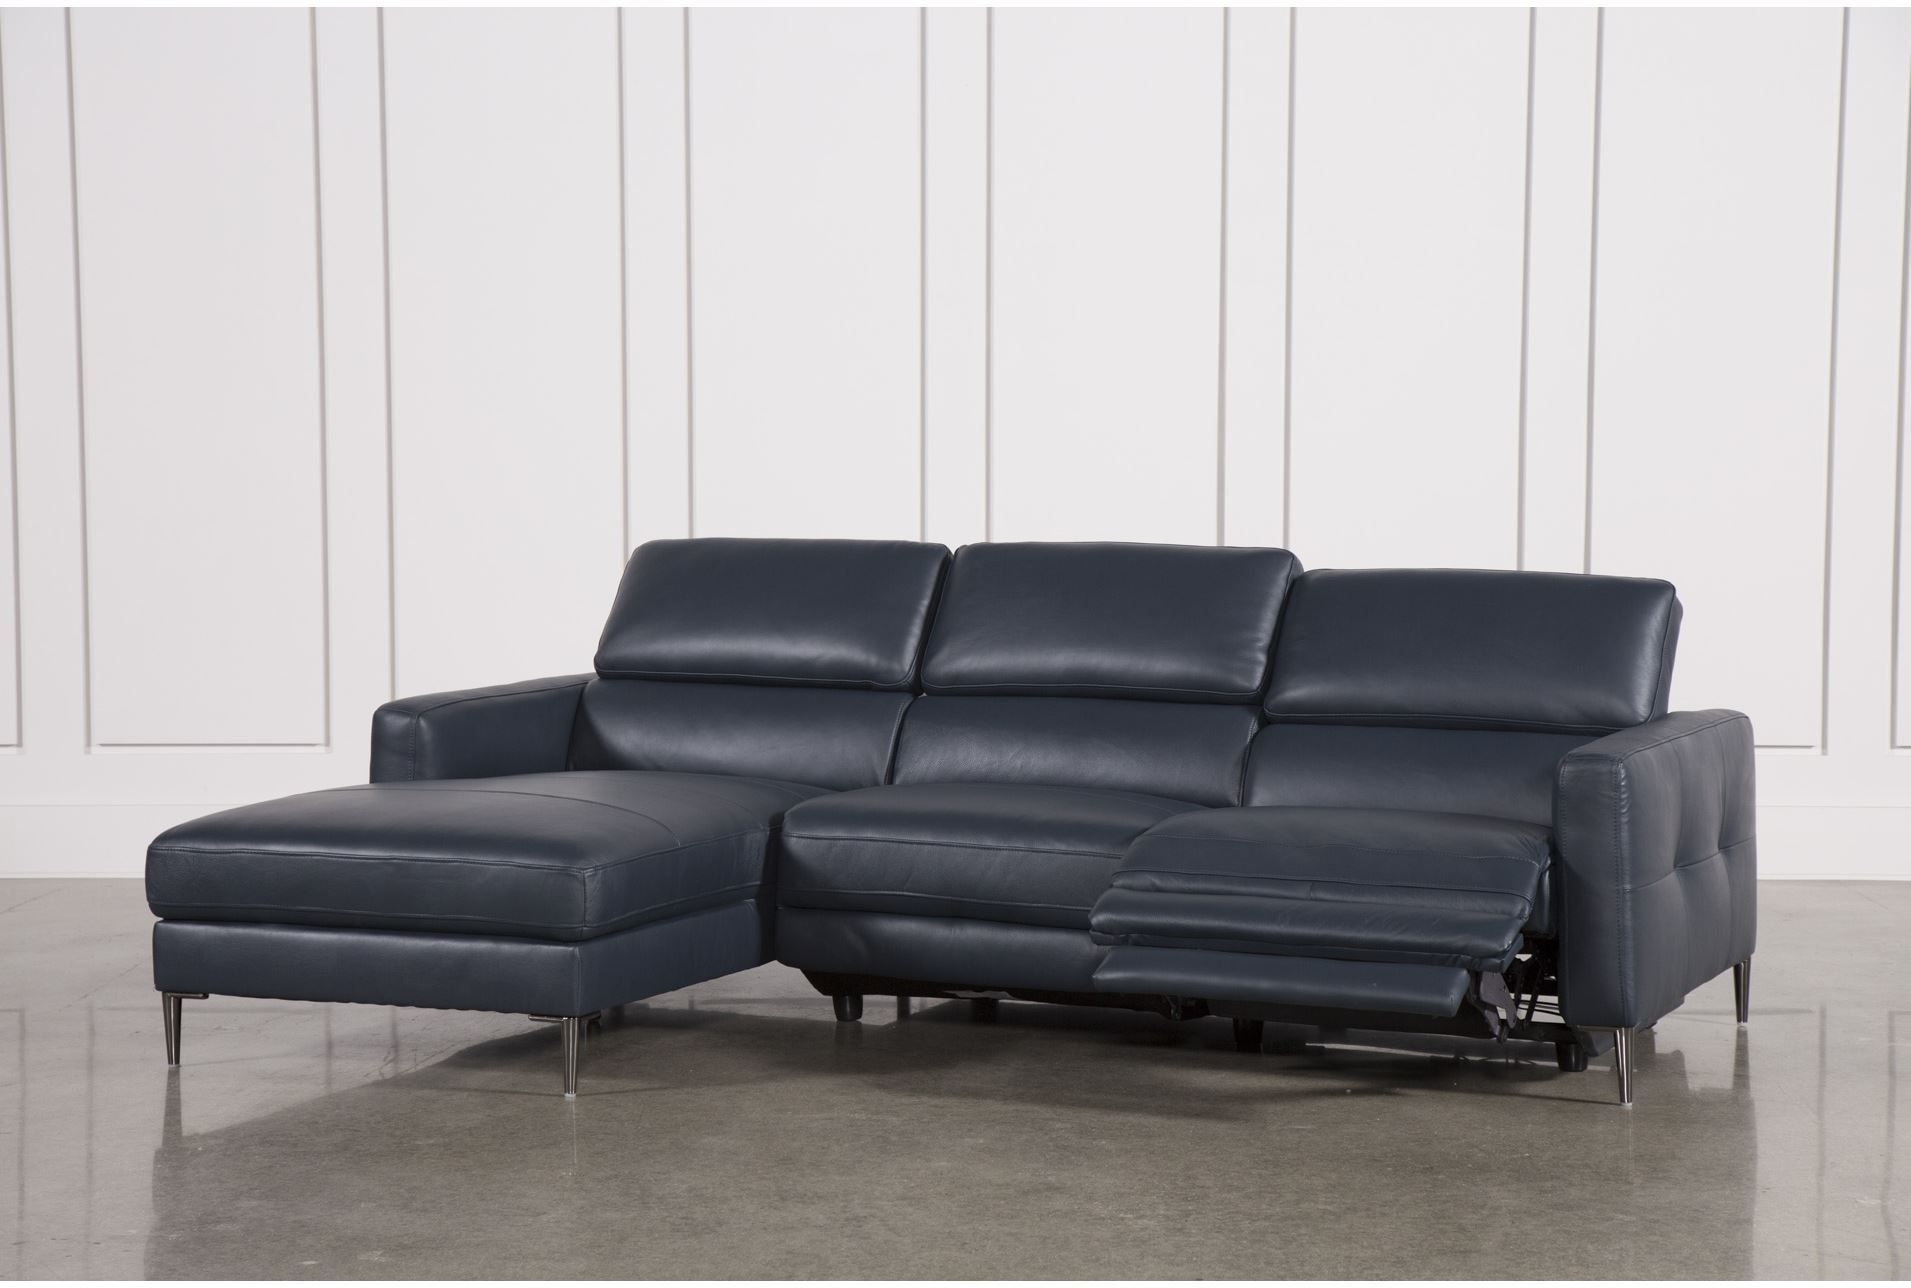 Tara Blue 2 Piece Left Facing Chaise Sofa | Modern Sectional Sofas in Tess 2 Piece Power Reclining Sectionals With Laf Chaise (Image 22 of 30)